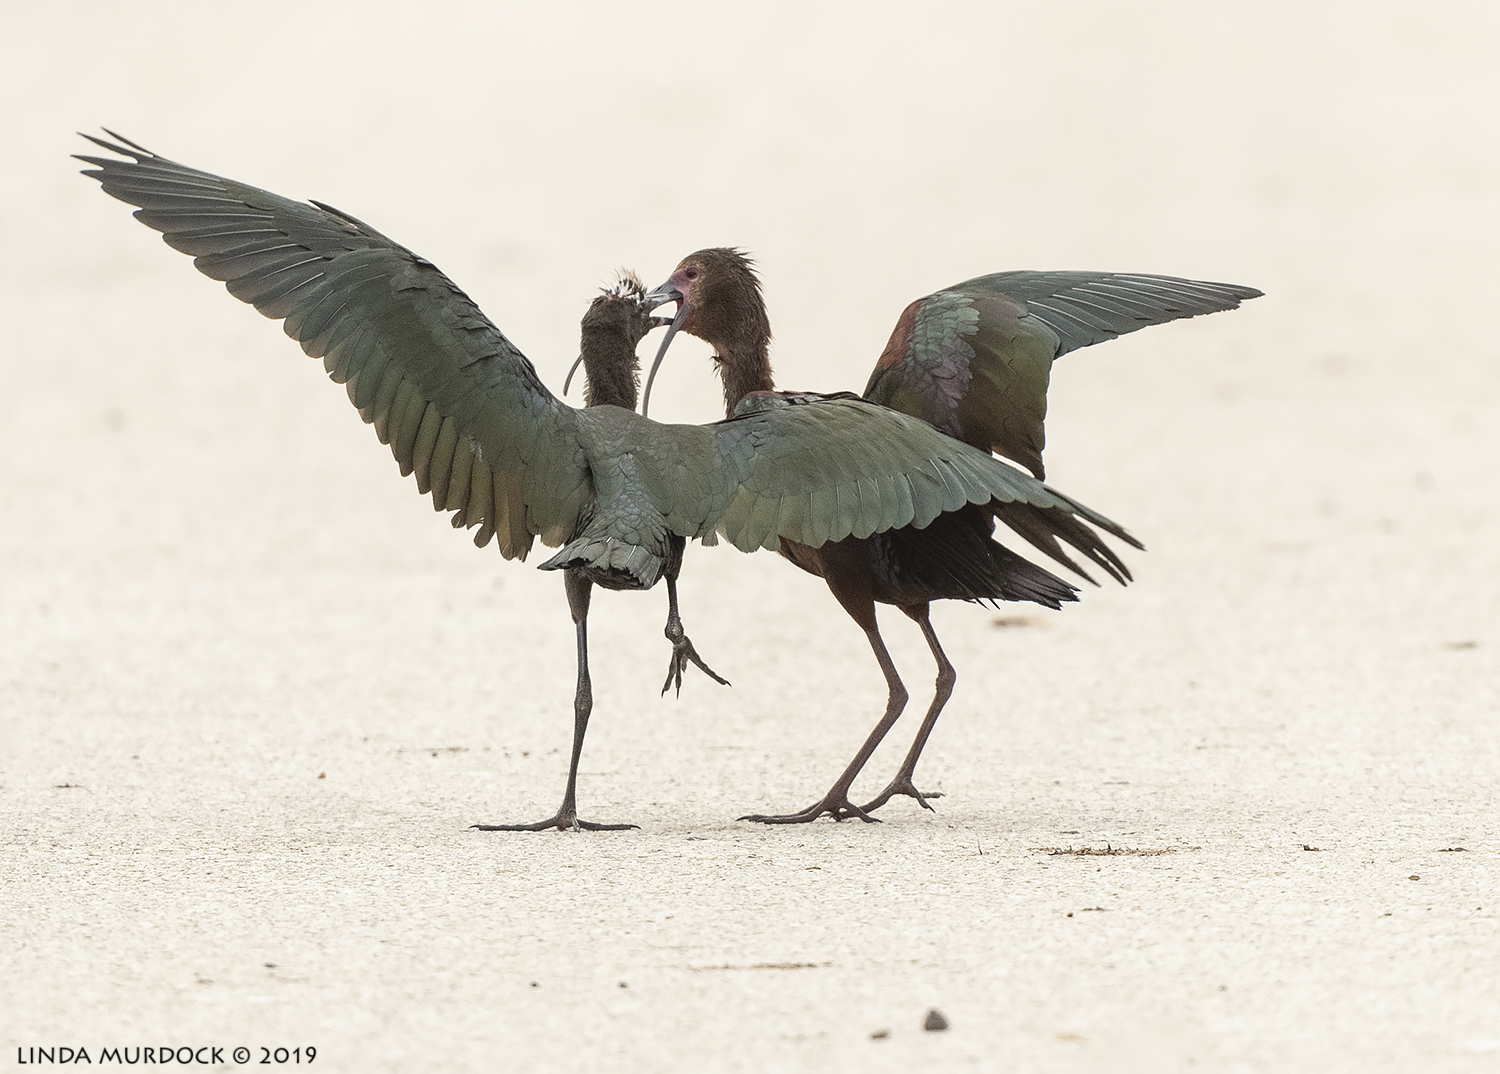 White-faced Ibis adult feeding youngster. Old habits are hard to break Nikon D850 with Nikkor 500 f/5.6 PF VR ~ 1/2500 sec f/6.3 ISO 800